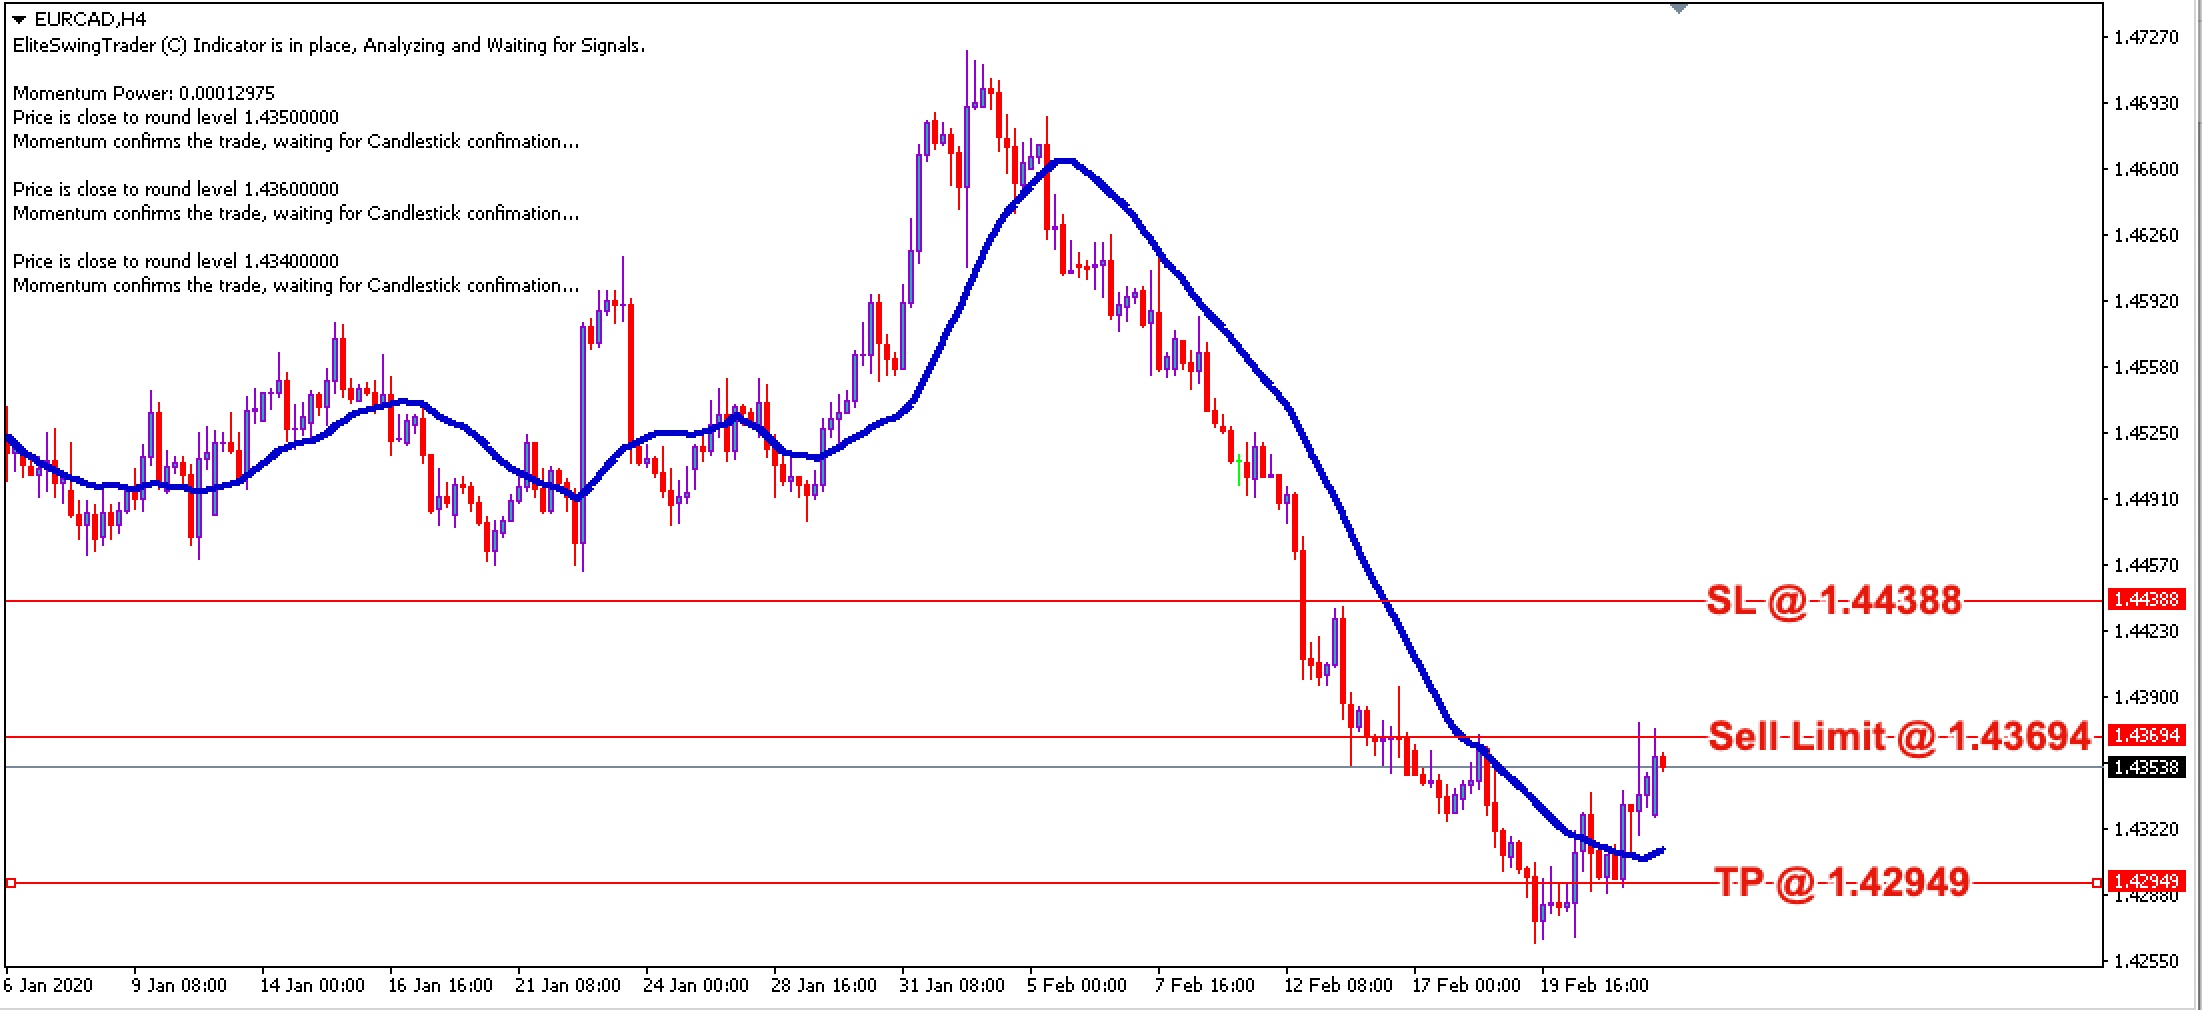 EUR/CAD Daily Price Forecast – 24th Feb 2020